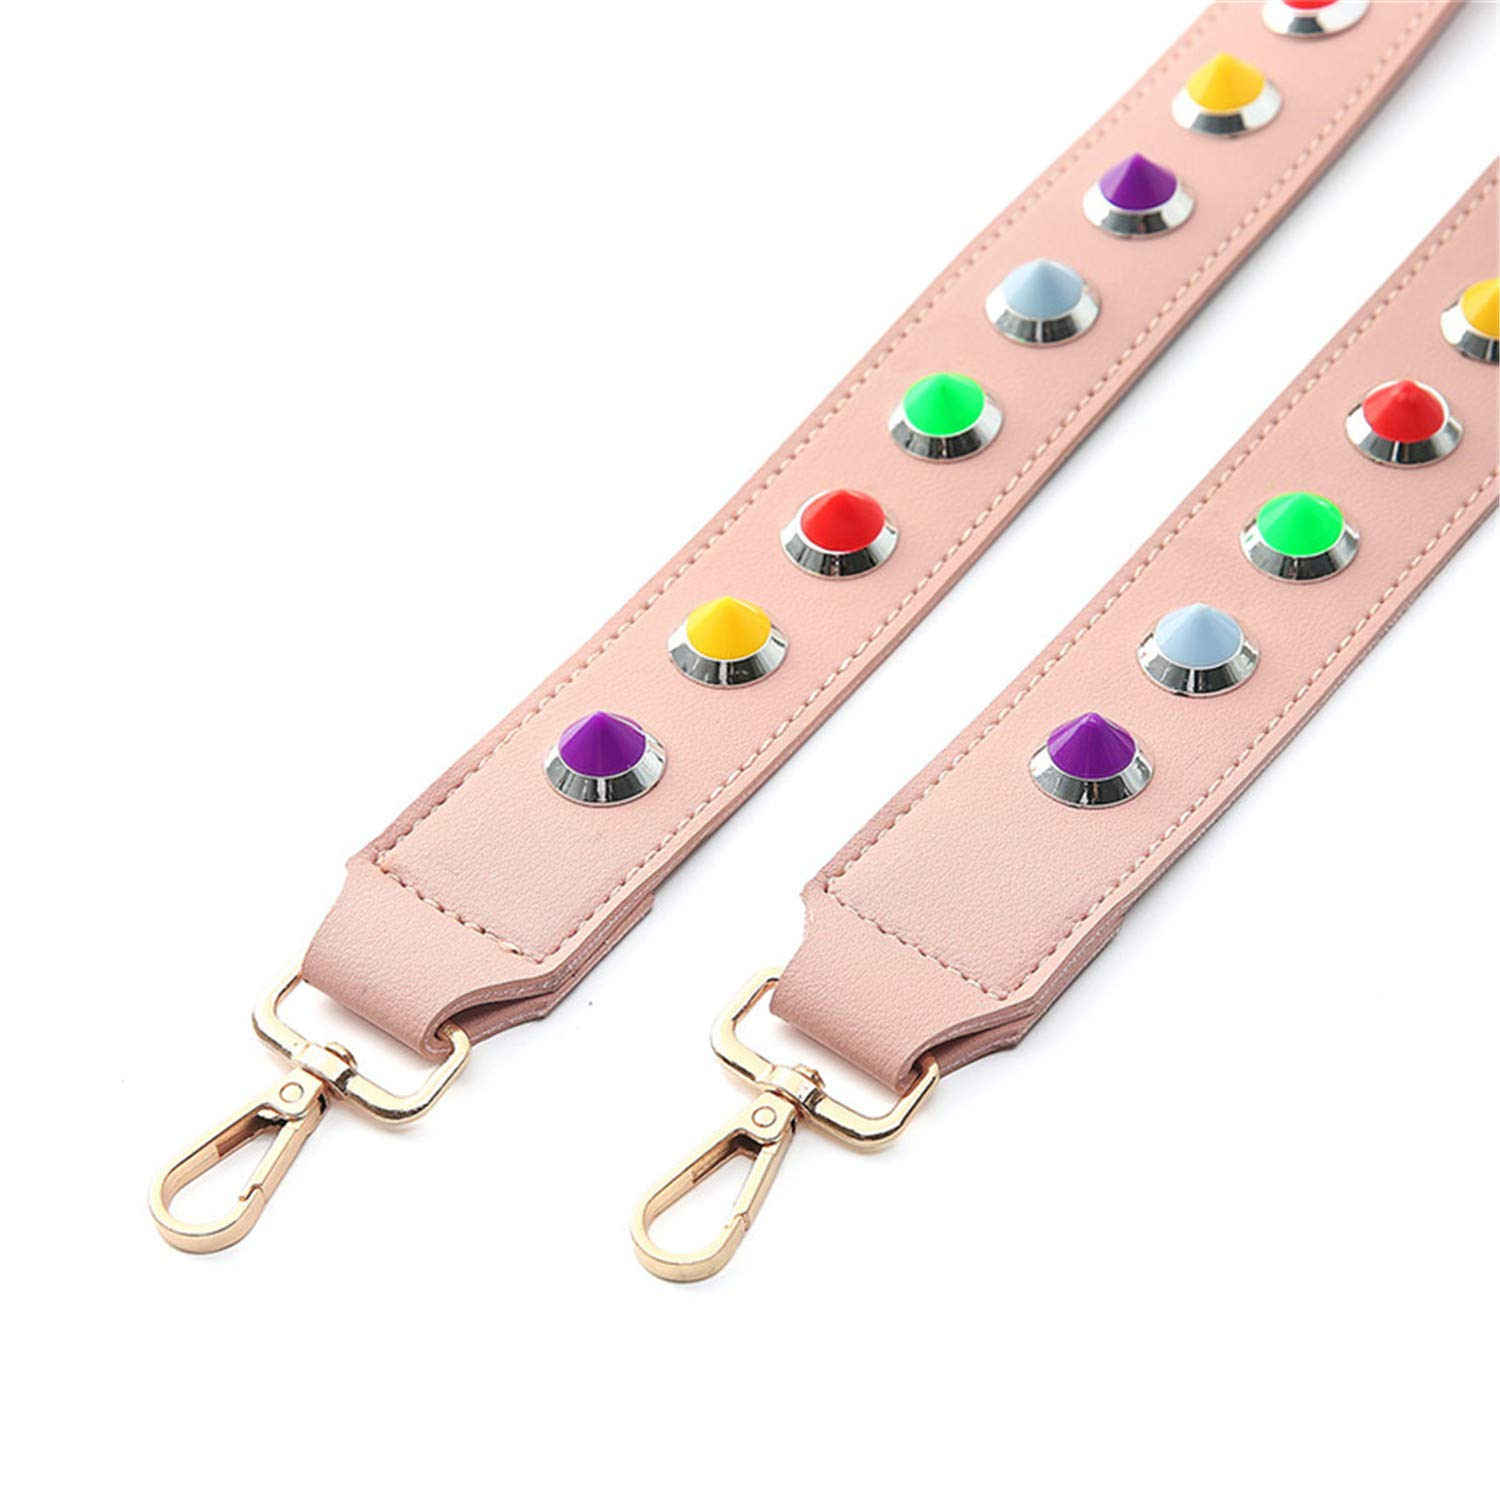 Anhon Diy Handbag Strap Pu Leather Diamonds Ladies Crossbody Bag Belts Replaceable Long Wide Shoulder Straps Hook,Bag Strap Style 4,Onesize